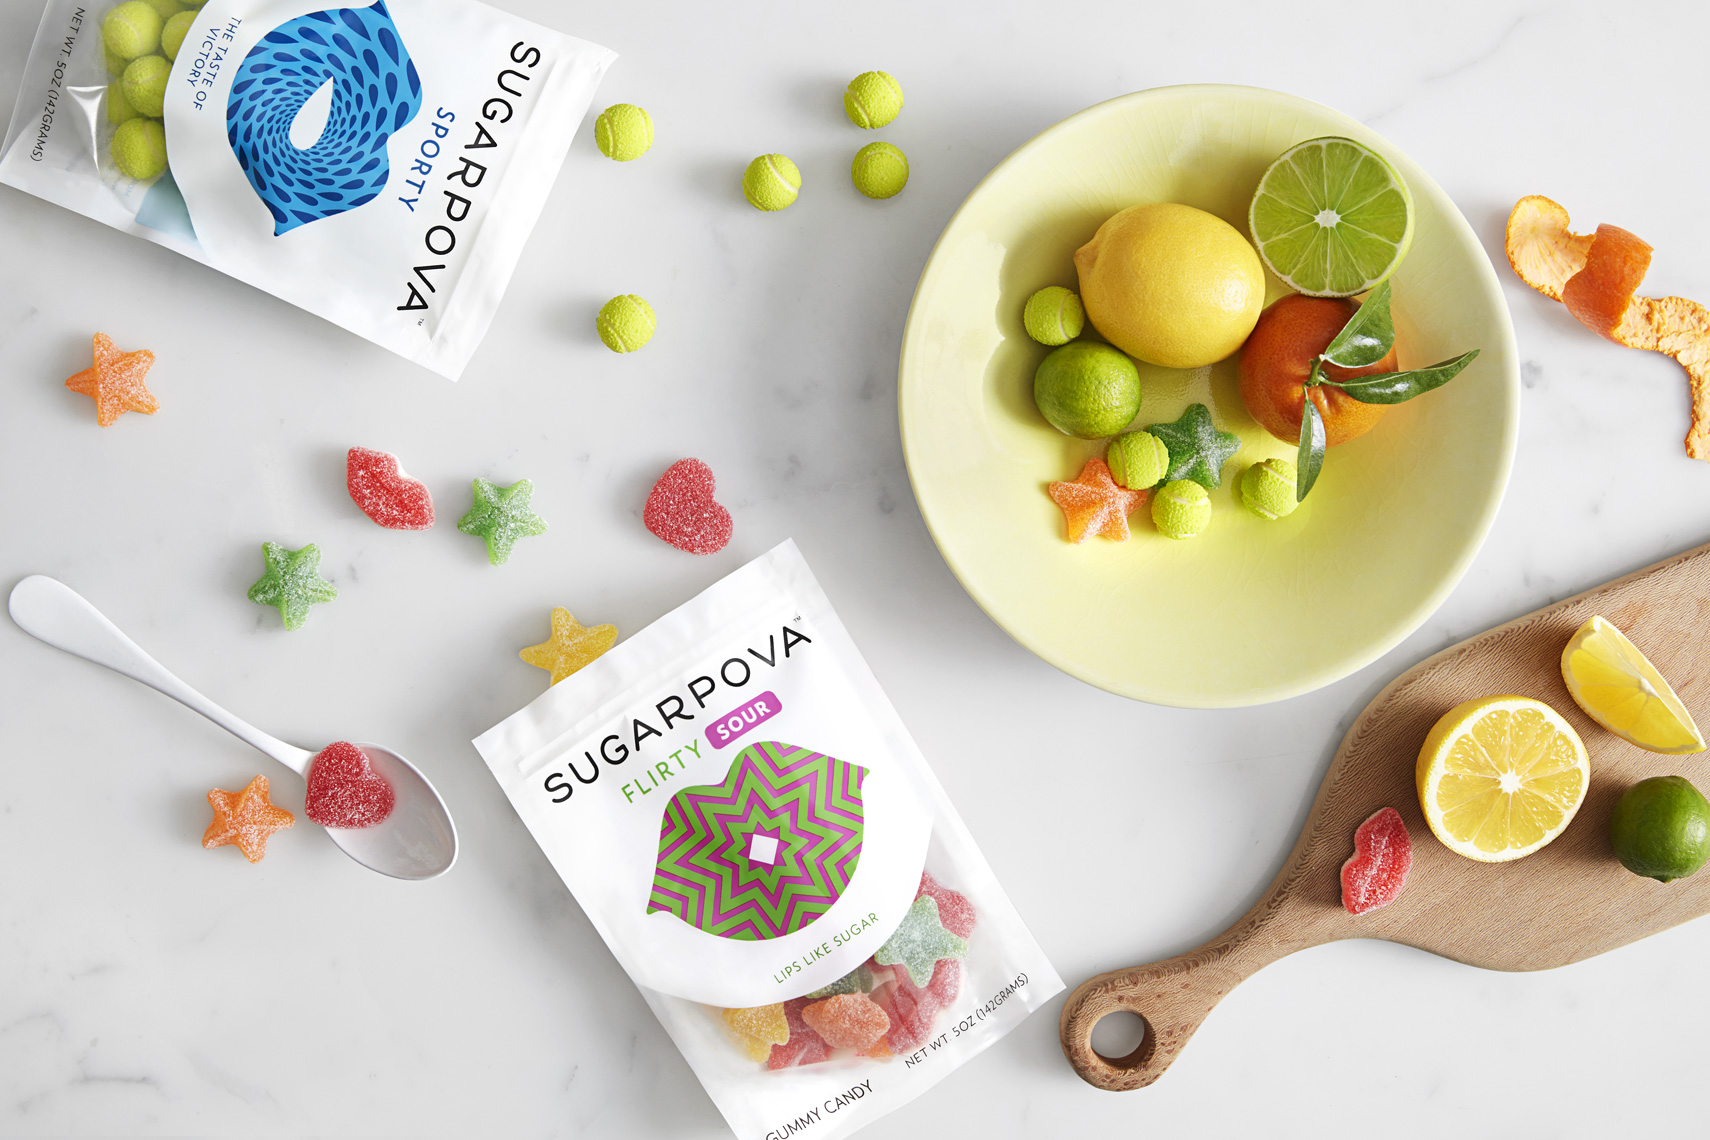 Sugarpova candy - Kimberly Genevieve lifestyle photographer Los Angeles